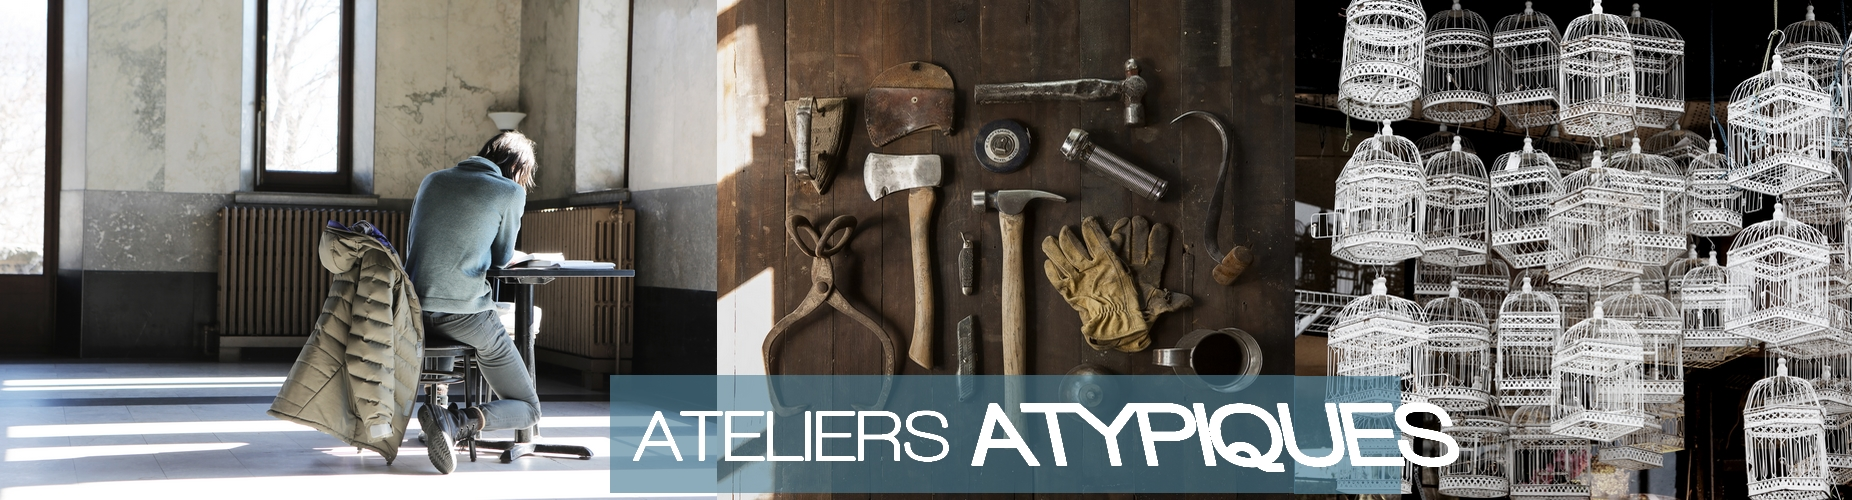 Ateliers atypiques